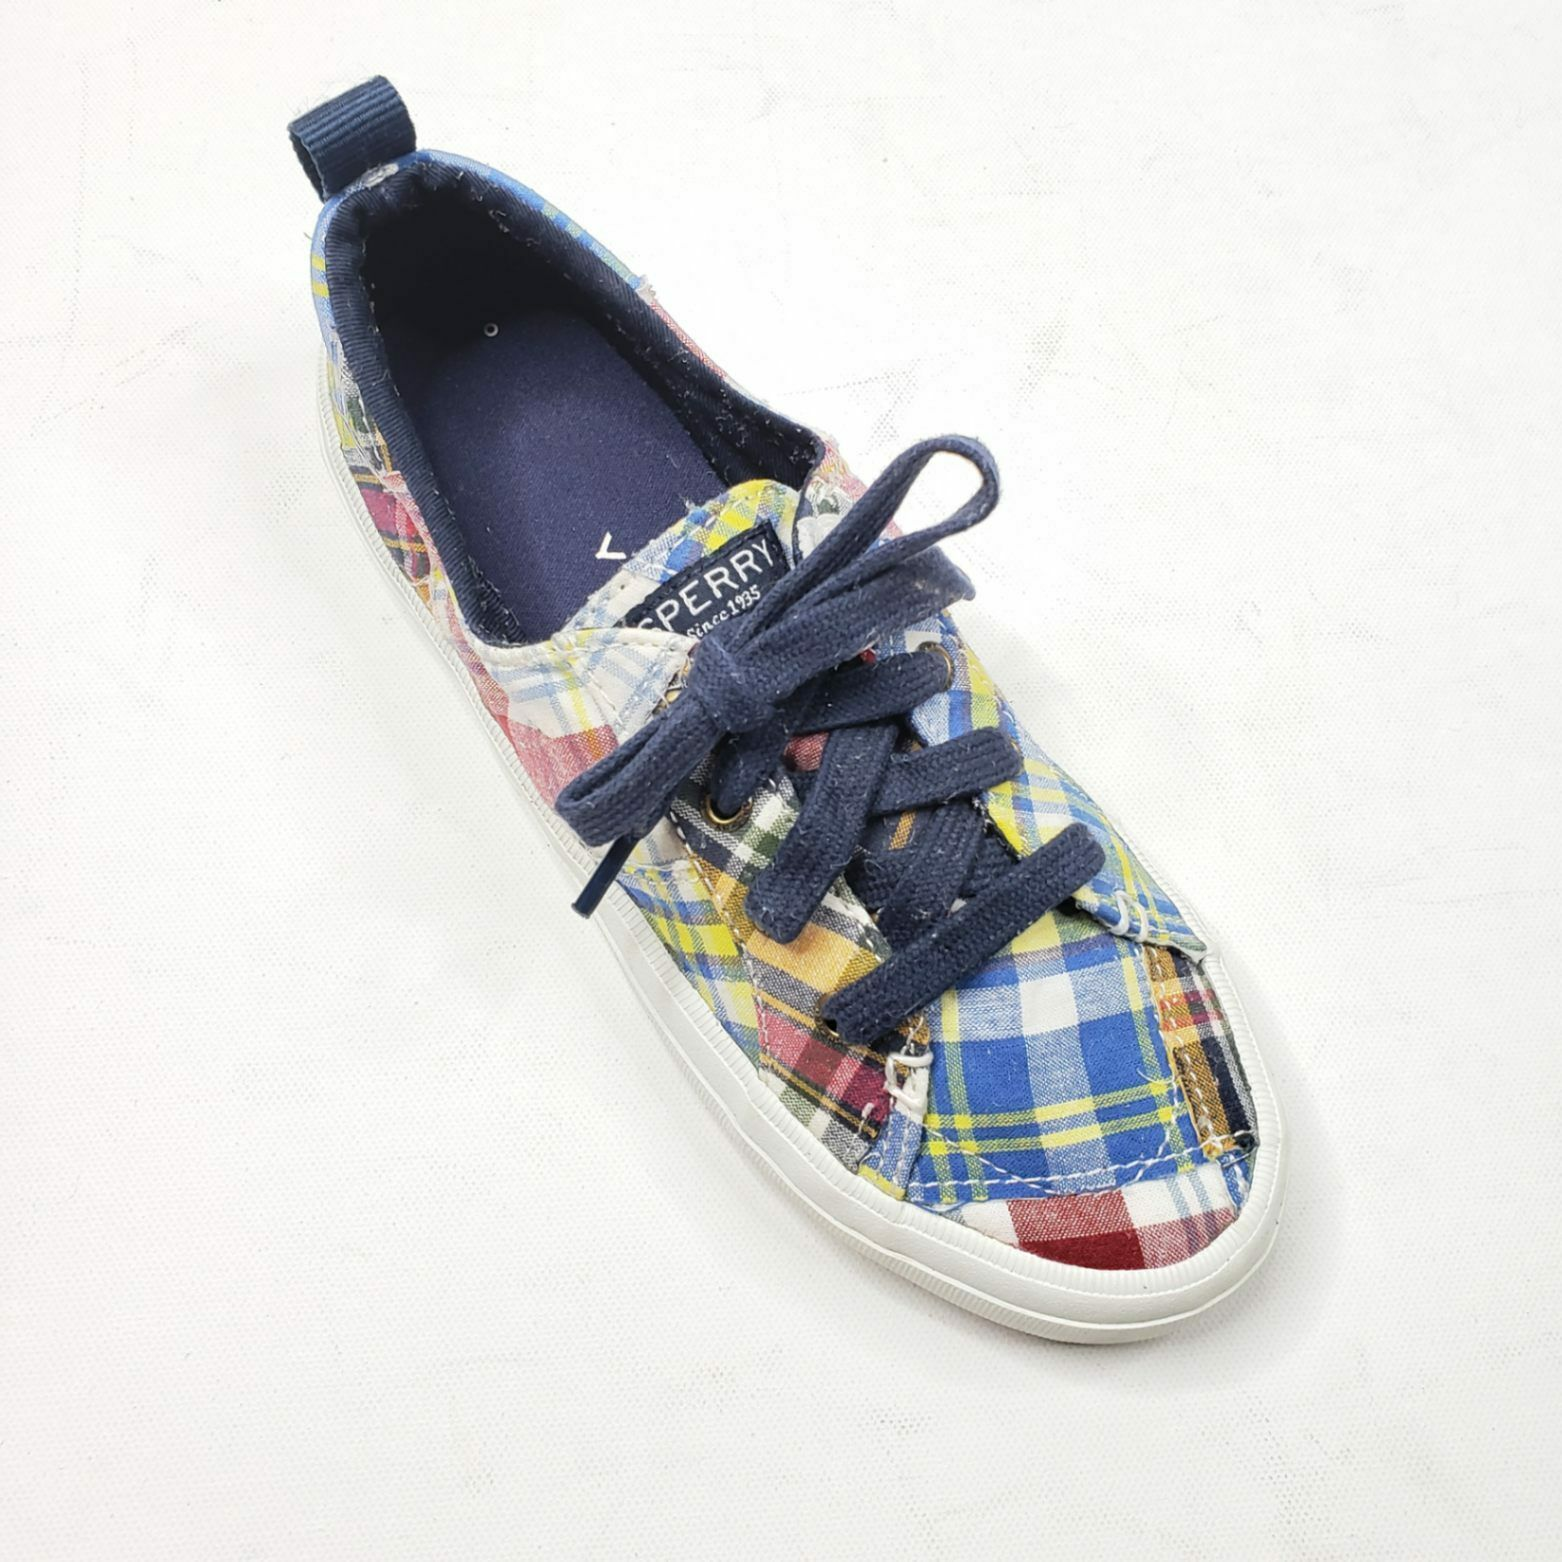 Sperry Women's Preppy Plaid Laced Sneakers Shoes Size 6